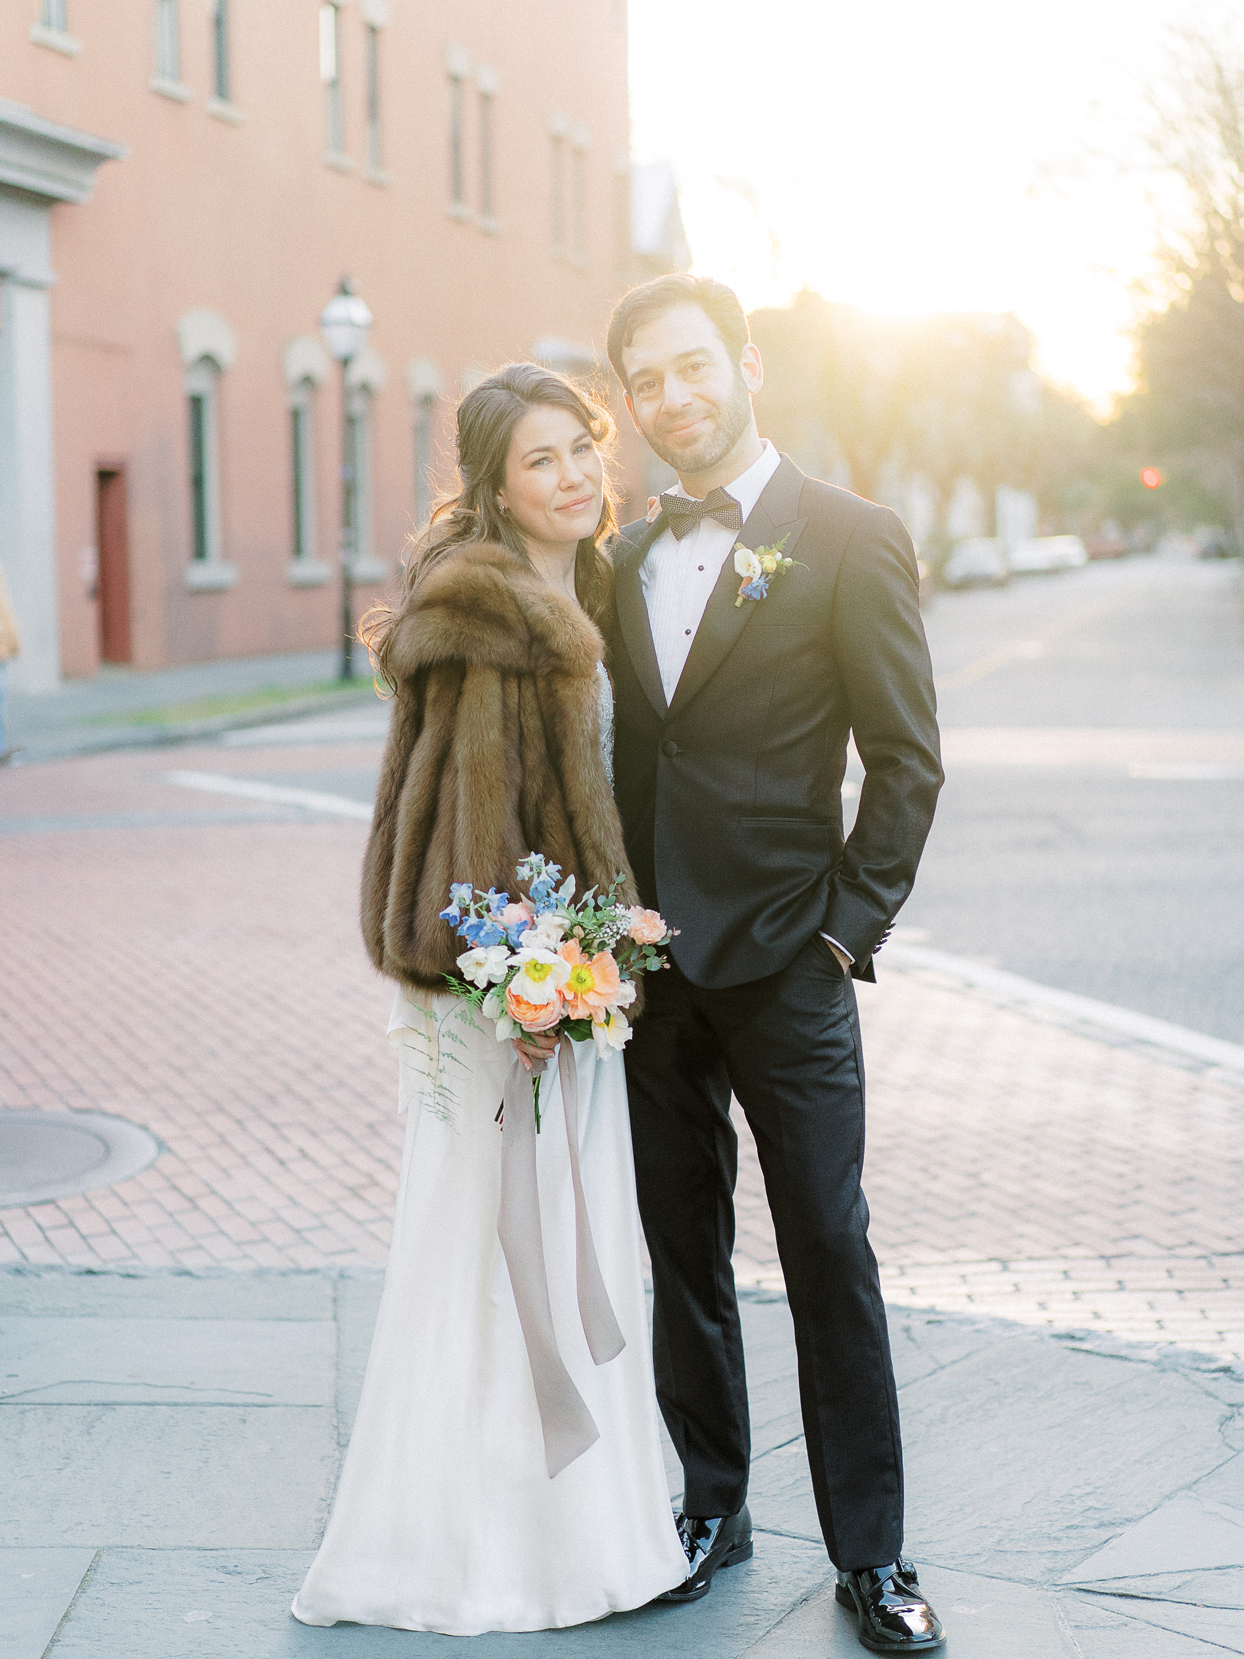 bride and groom outside on roadway smiling